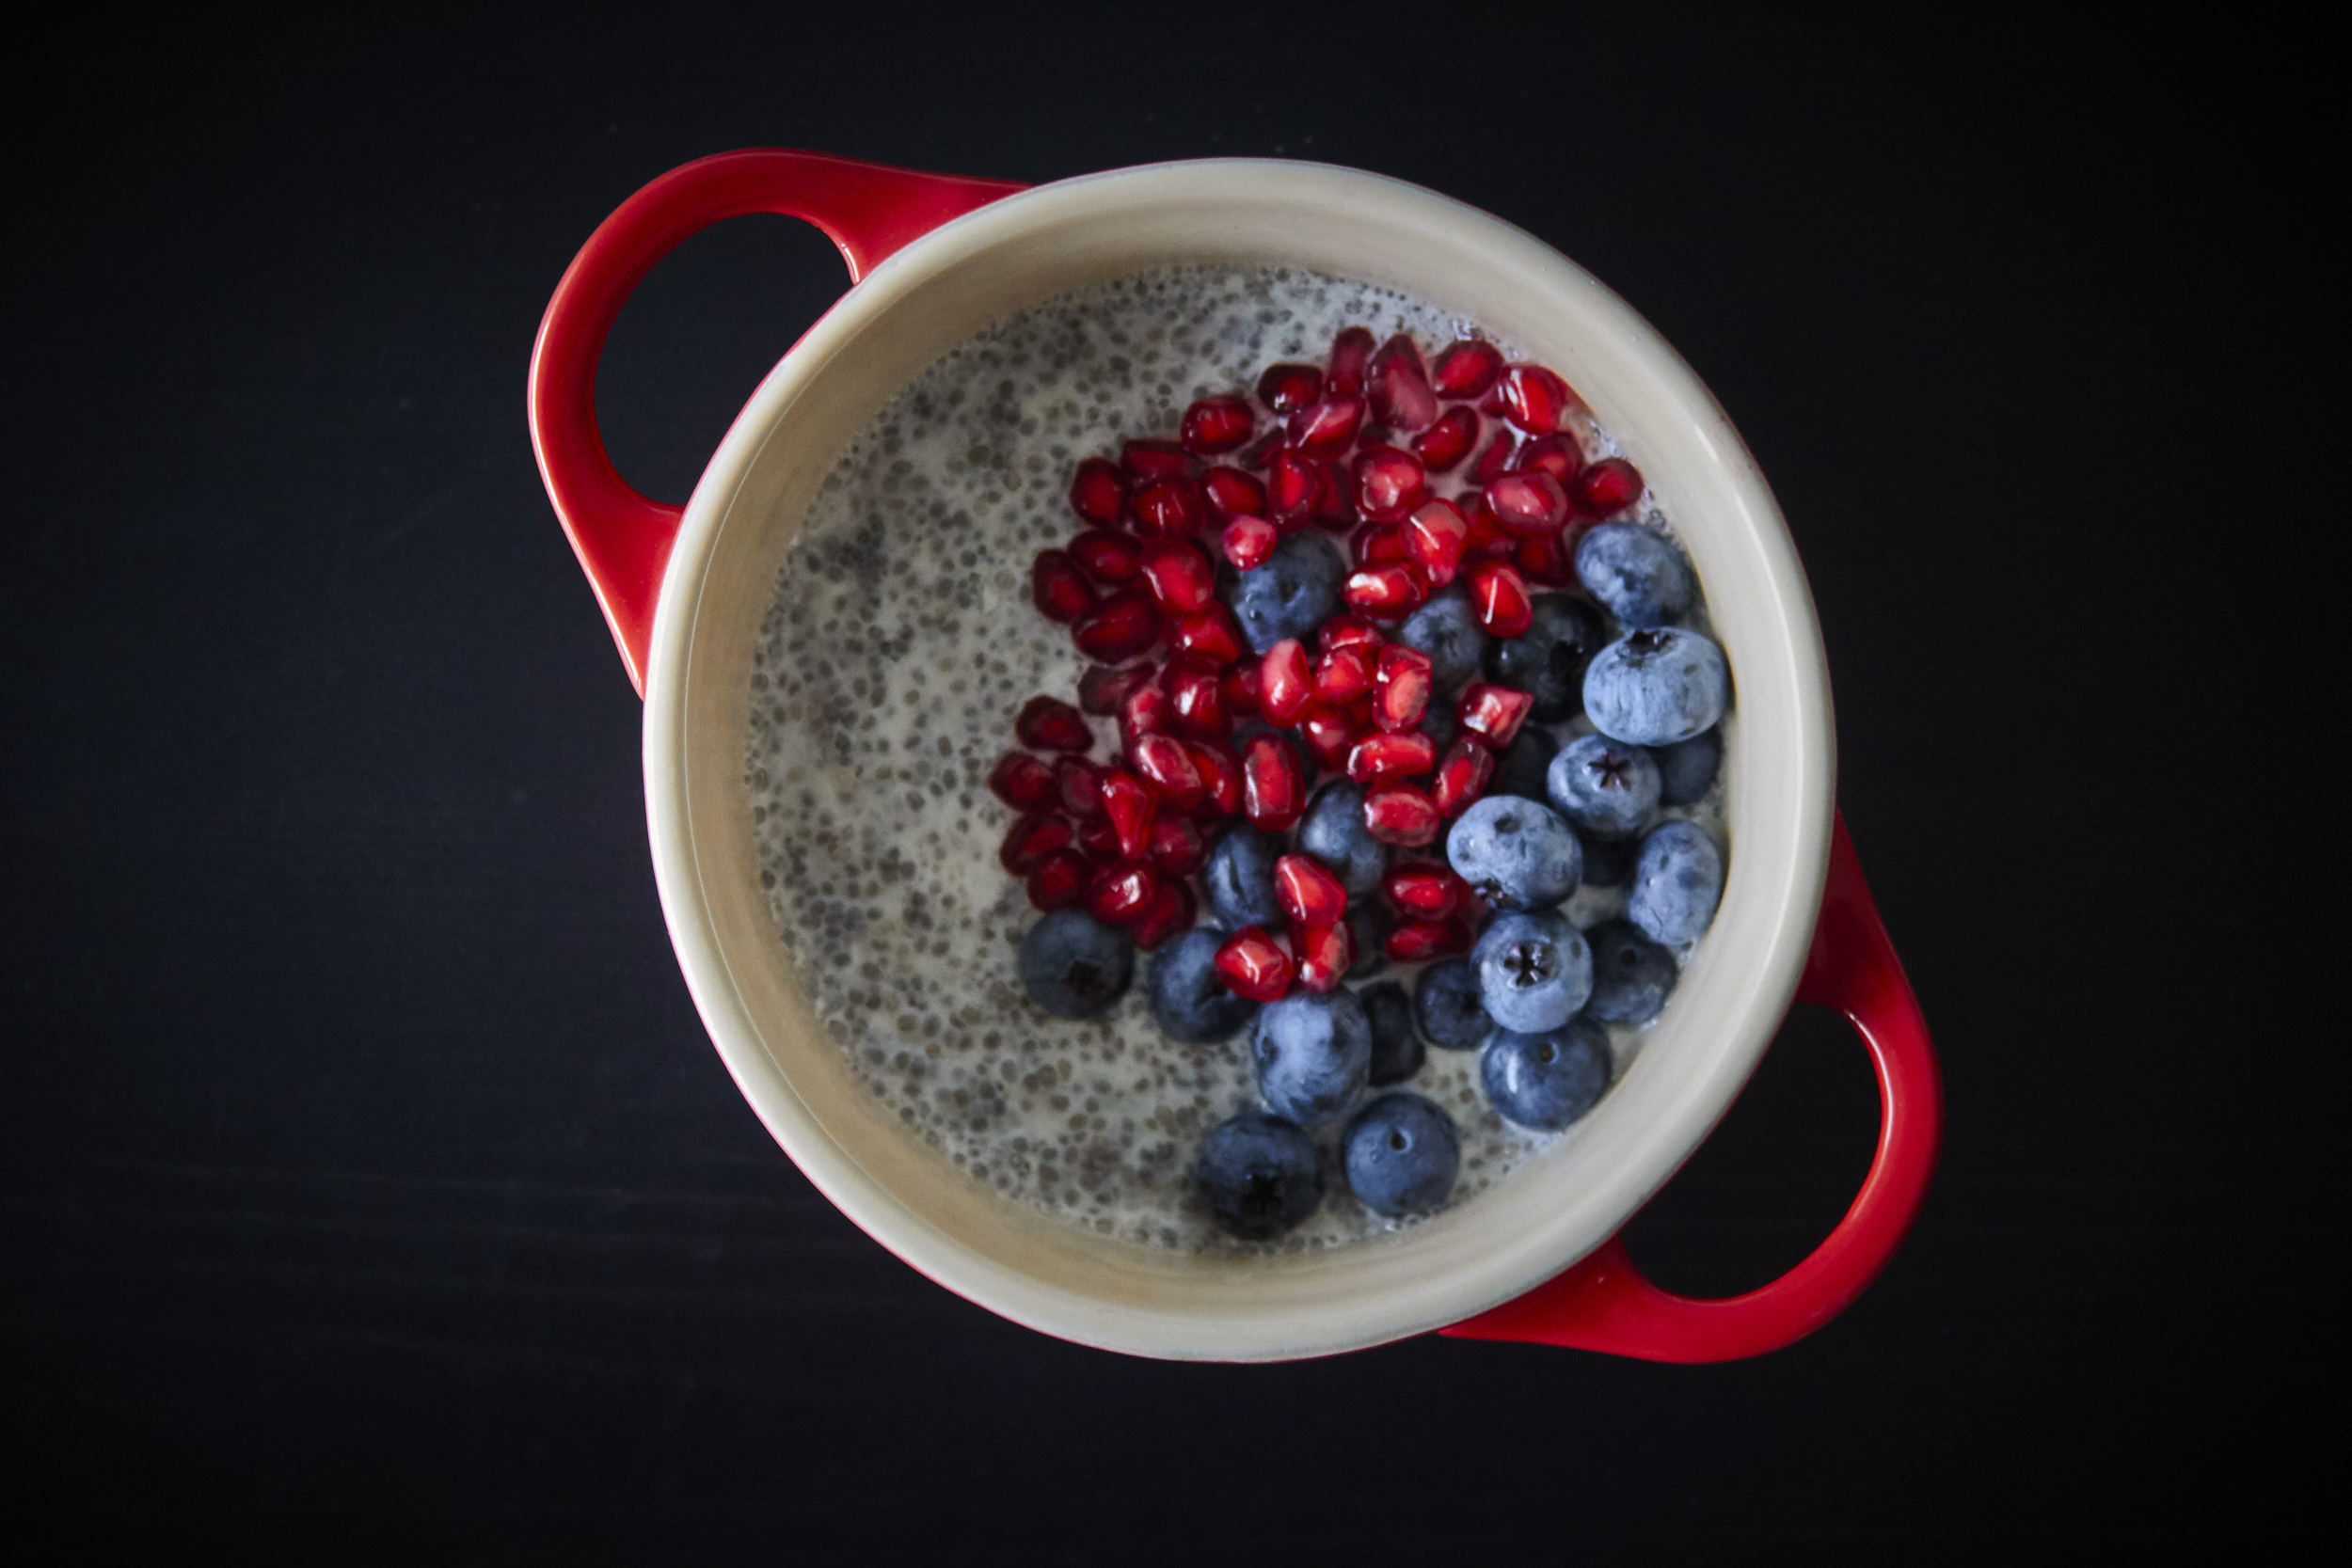 Basic Chia Seed Pudding - with pomegranate seeds and blueberries | In Carina's Kitchen